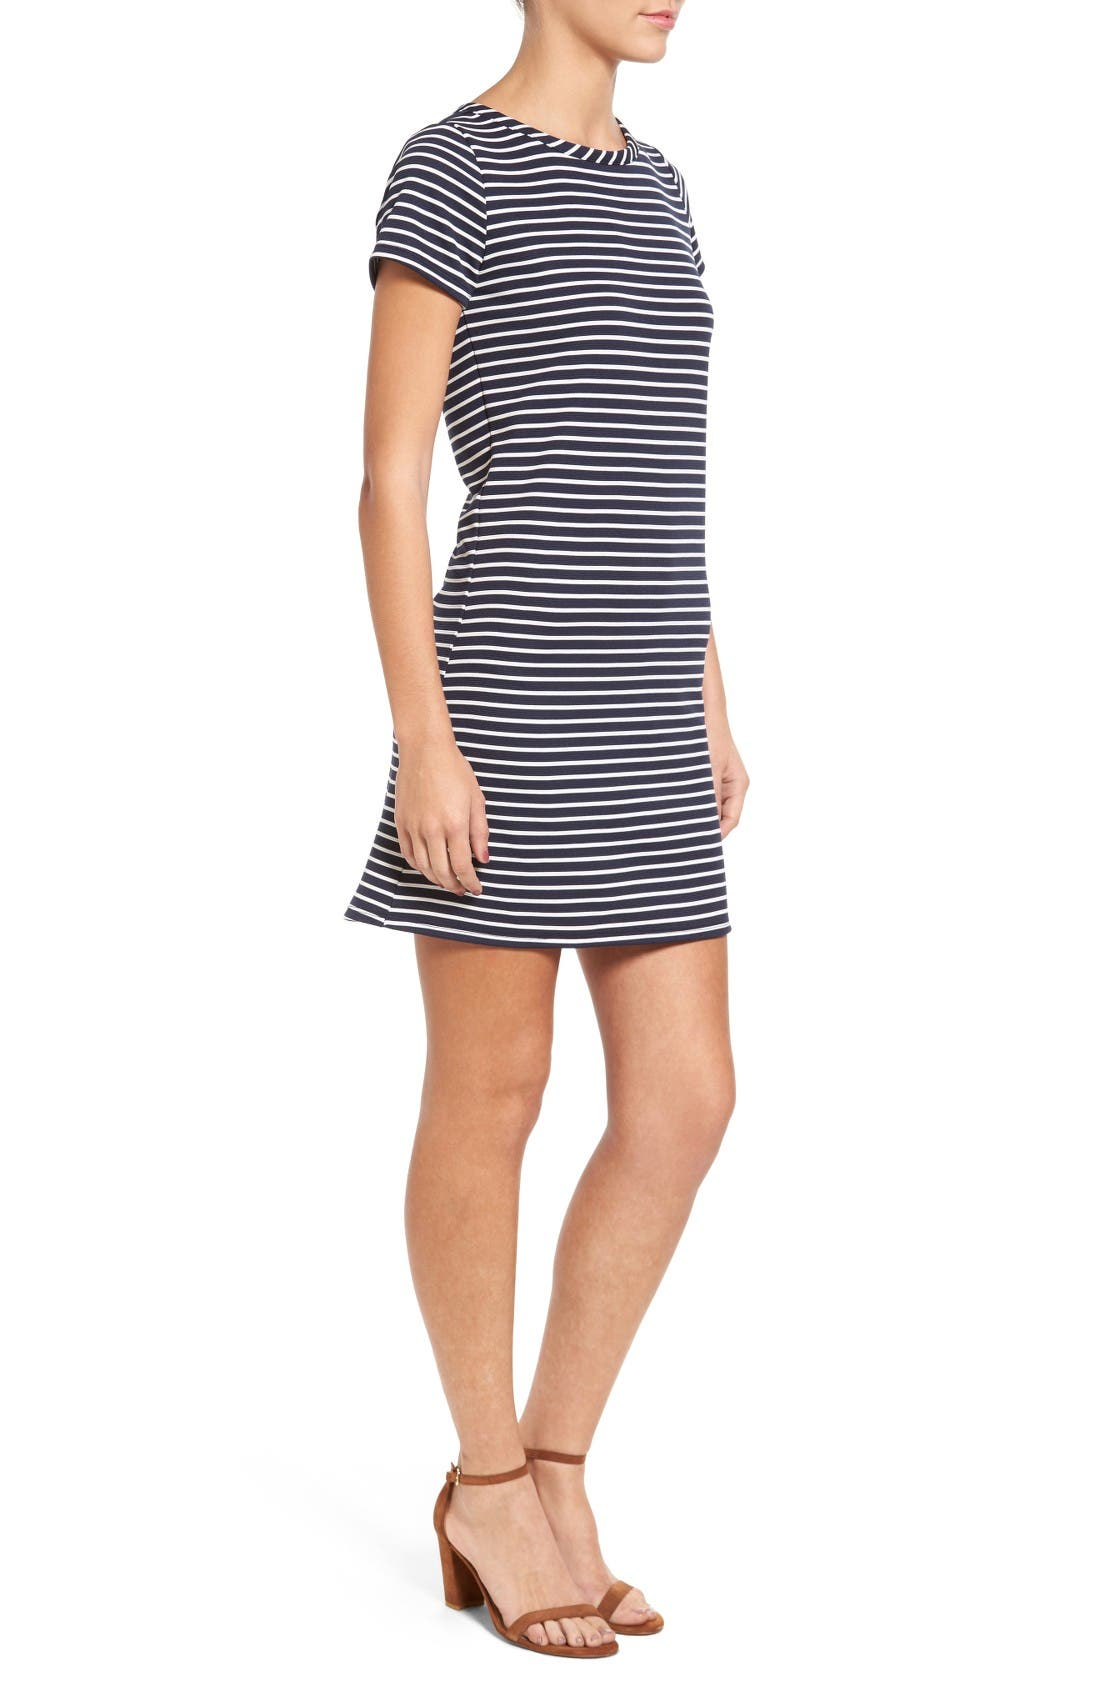 Alternate Image 3  - Loveappella Stripe Ottoman Shift Dress (Petite)